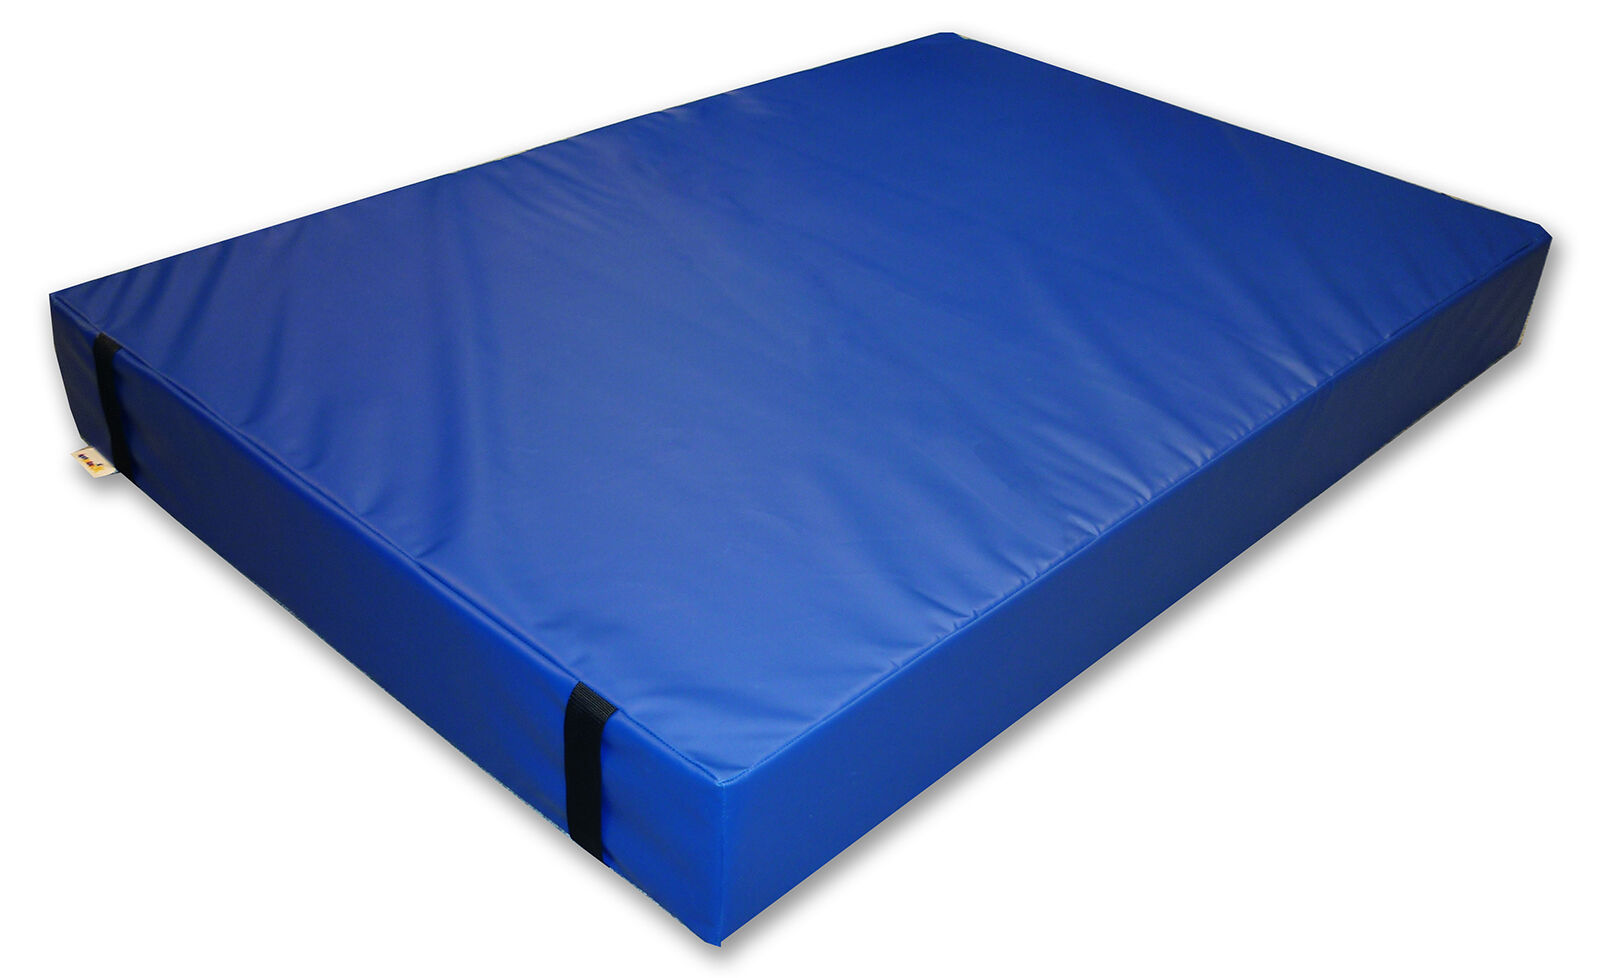 Implay® Gymnastics 610gsm PVC Foam bluee Gym Landing Crash Mat - 180 x 120 x 10cm